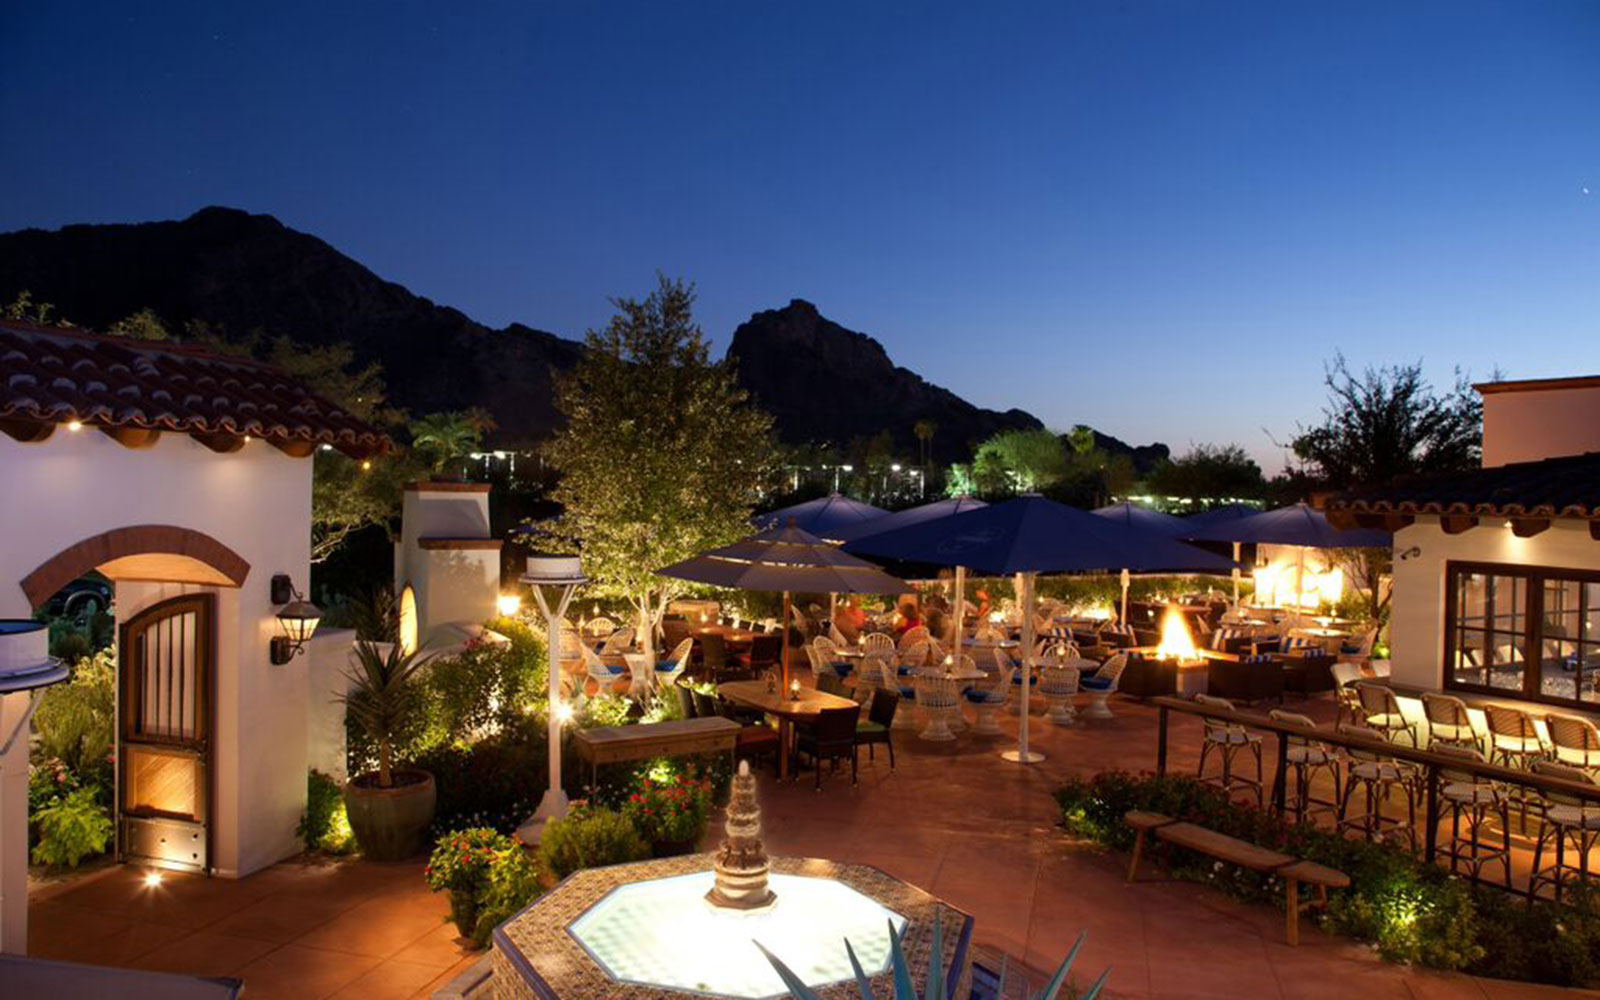 Ten of America's Best Outdoor Dining Spots, According to OpenTable: El Chorro in Paradise Valley, Arizona